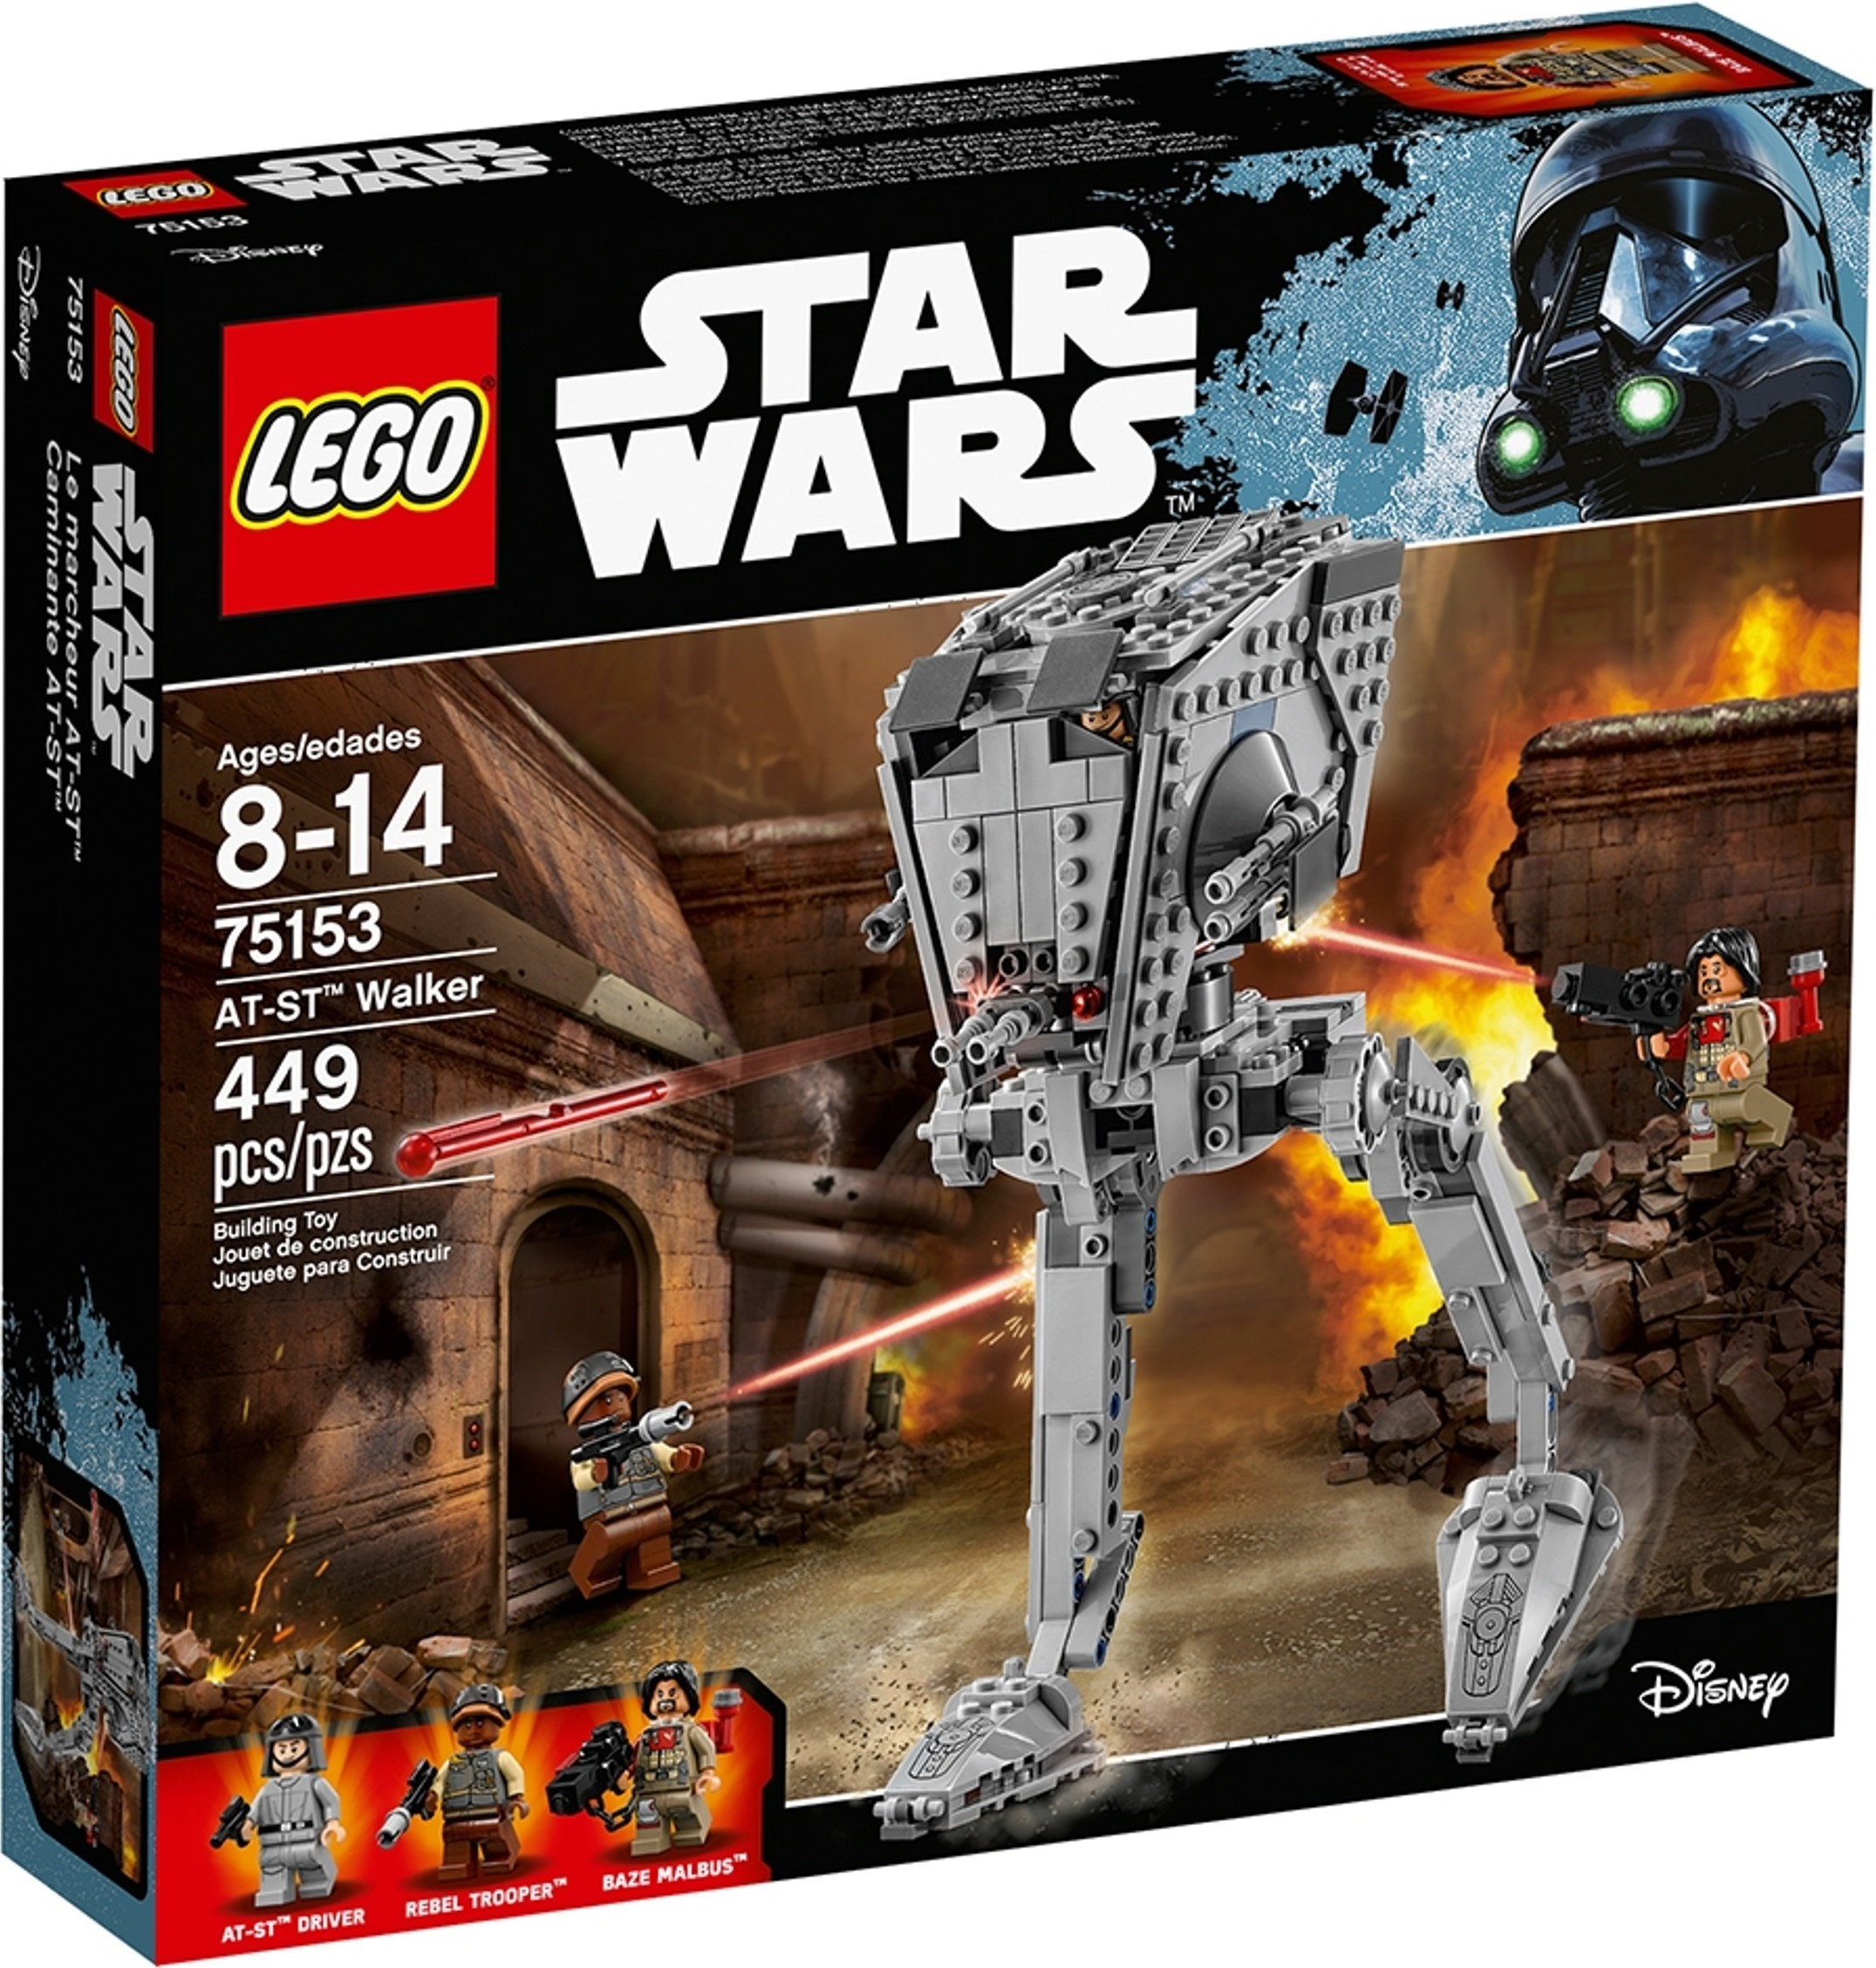 AT-ST Walker -